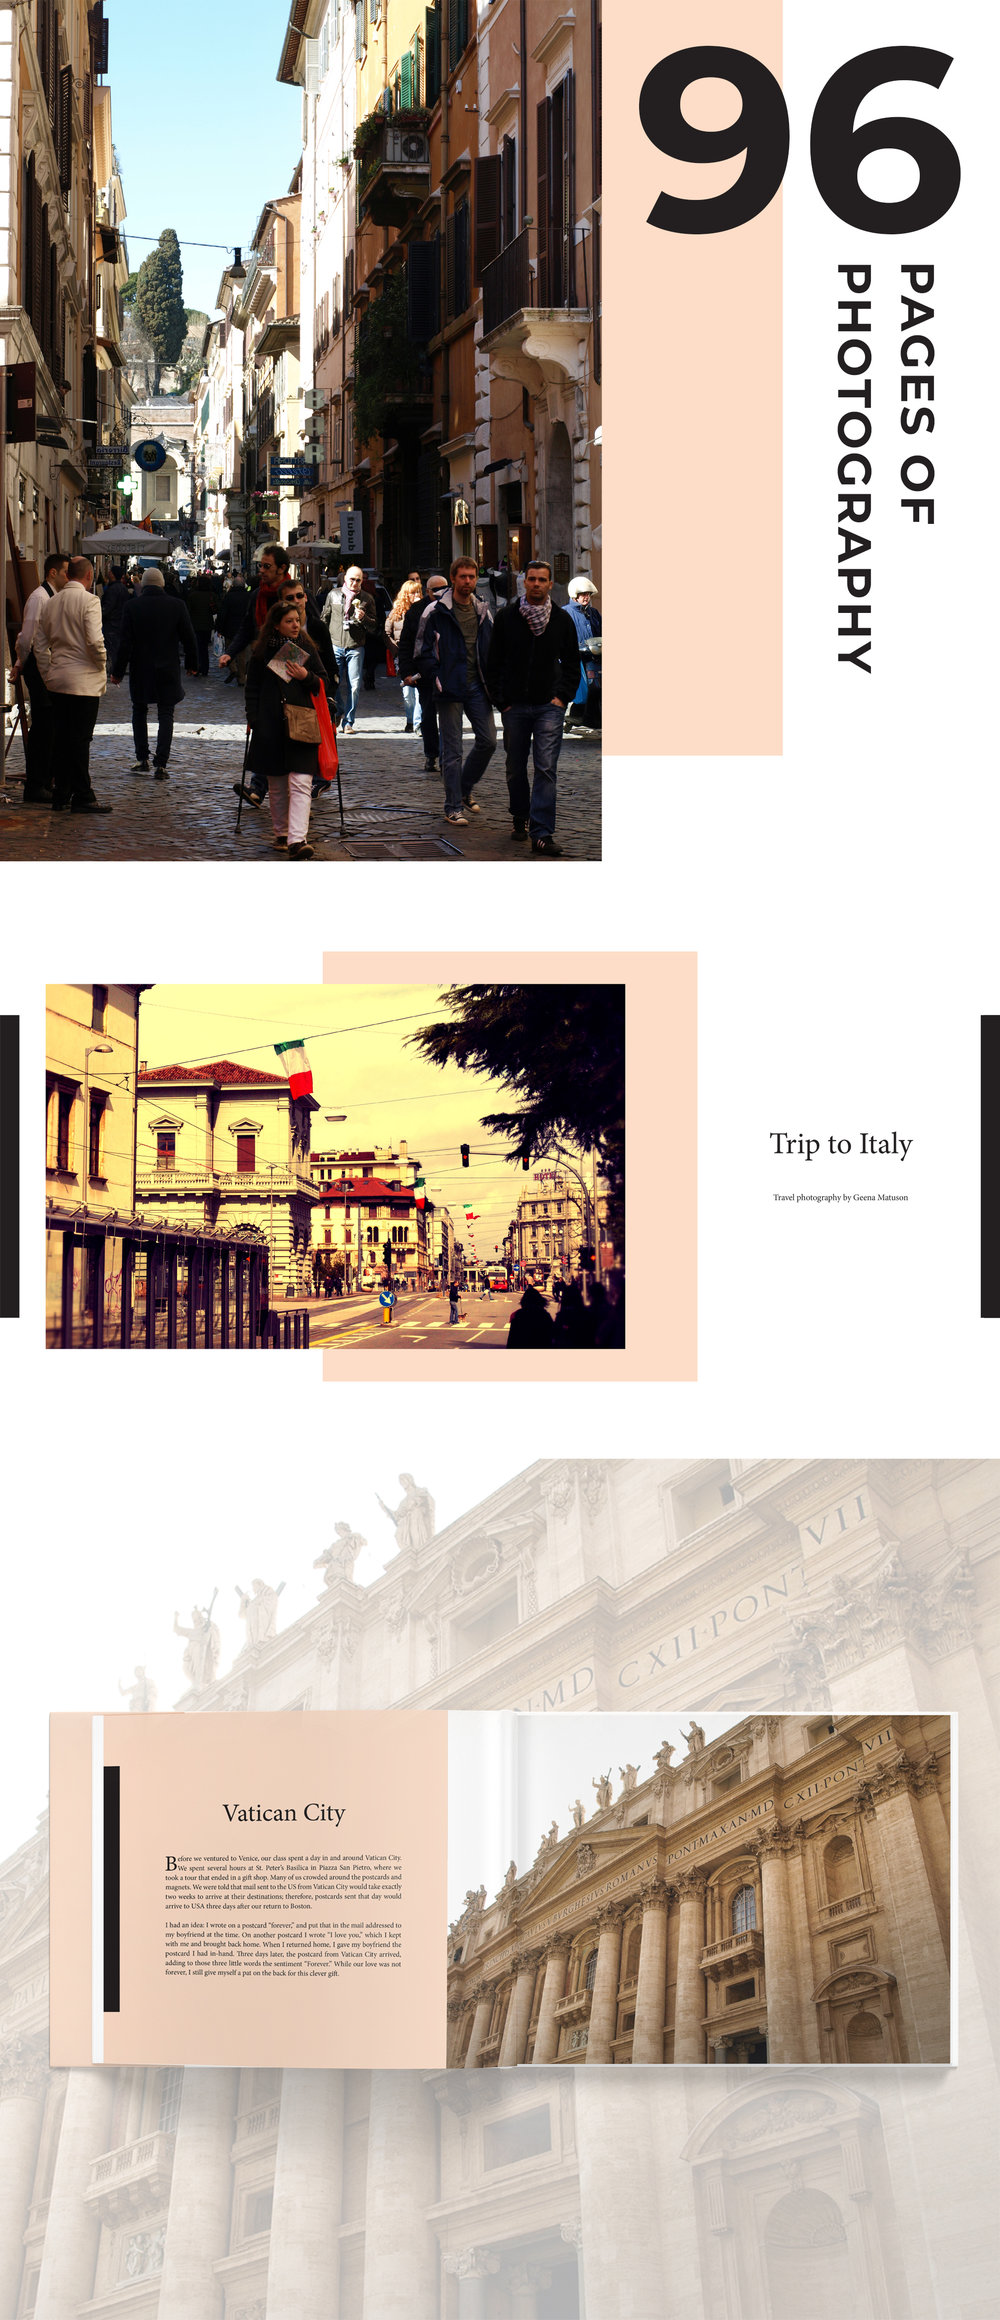 "Geena Matuson's (@geenamatuson) photography book featuring work from her ""Trip to Italy"" now available on Amazon.com."